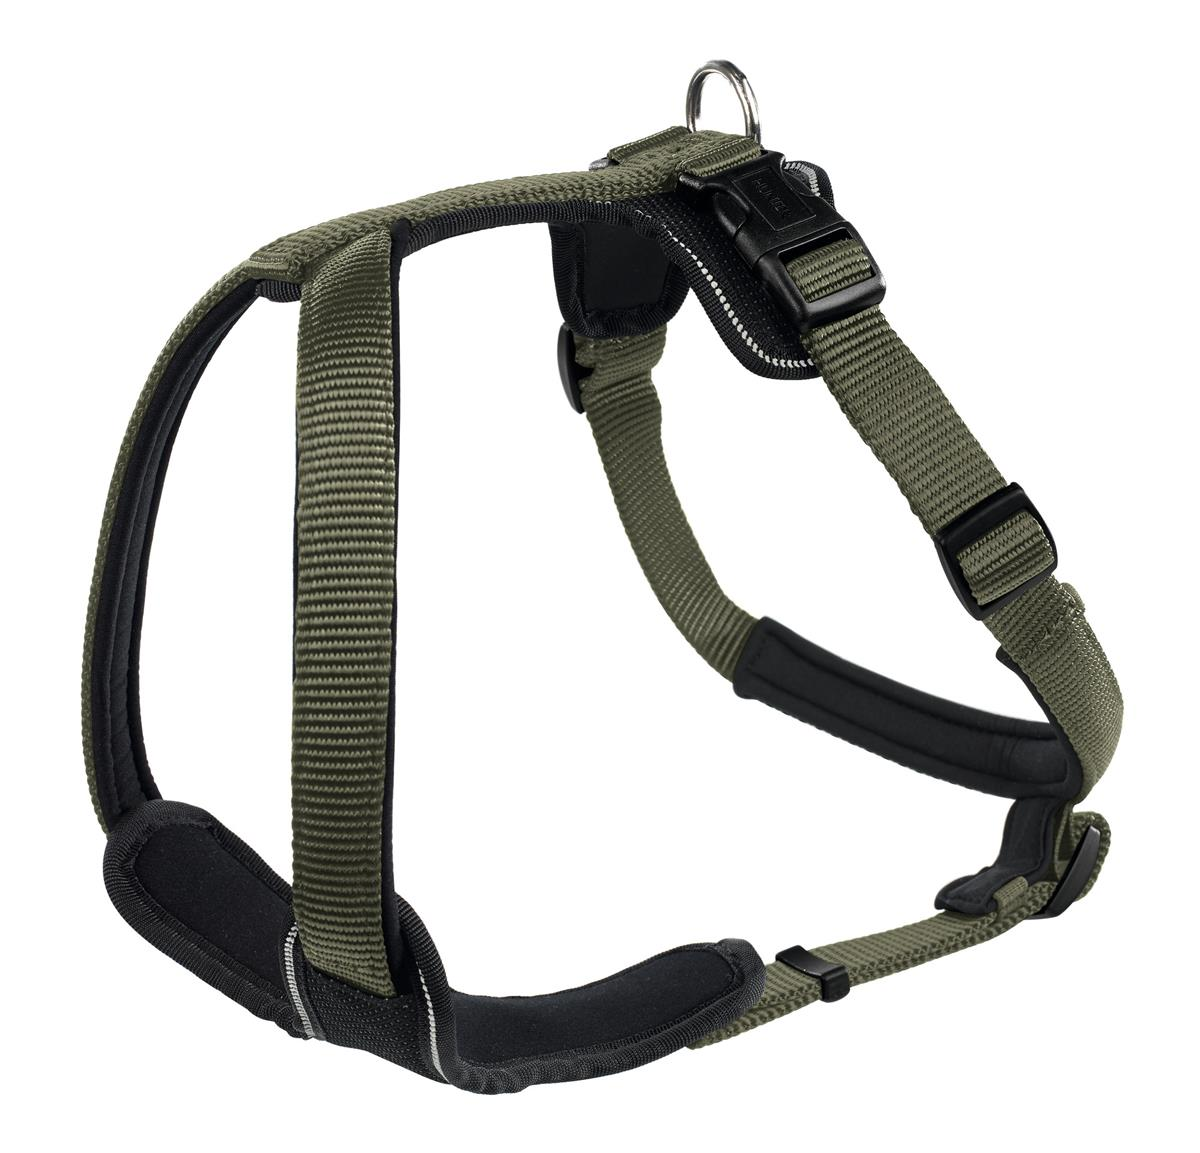 Harness Neopren XS 38-48 cm, 15 mm Nylon green/Neopren black